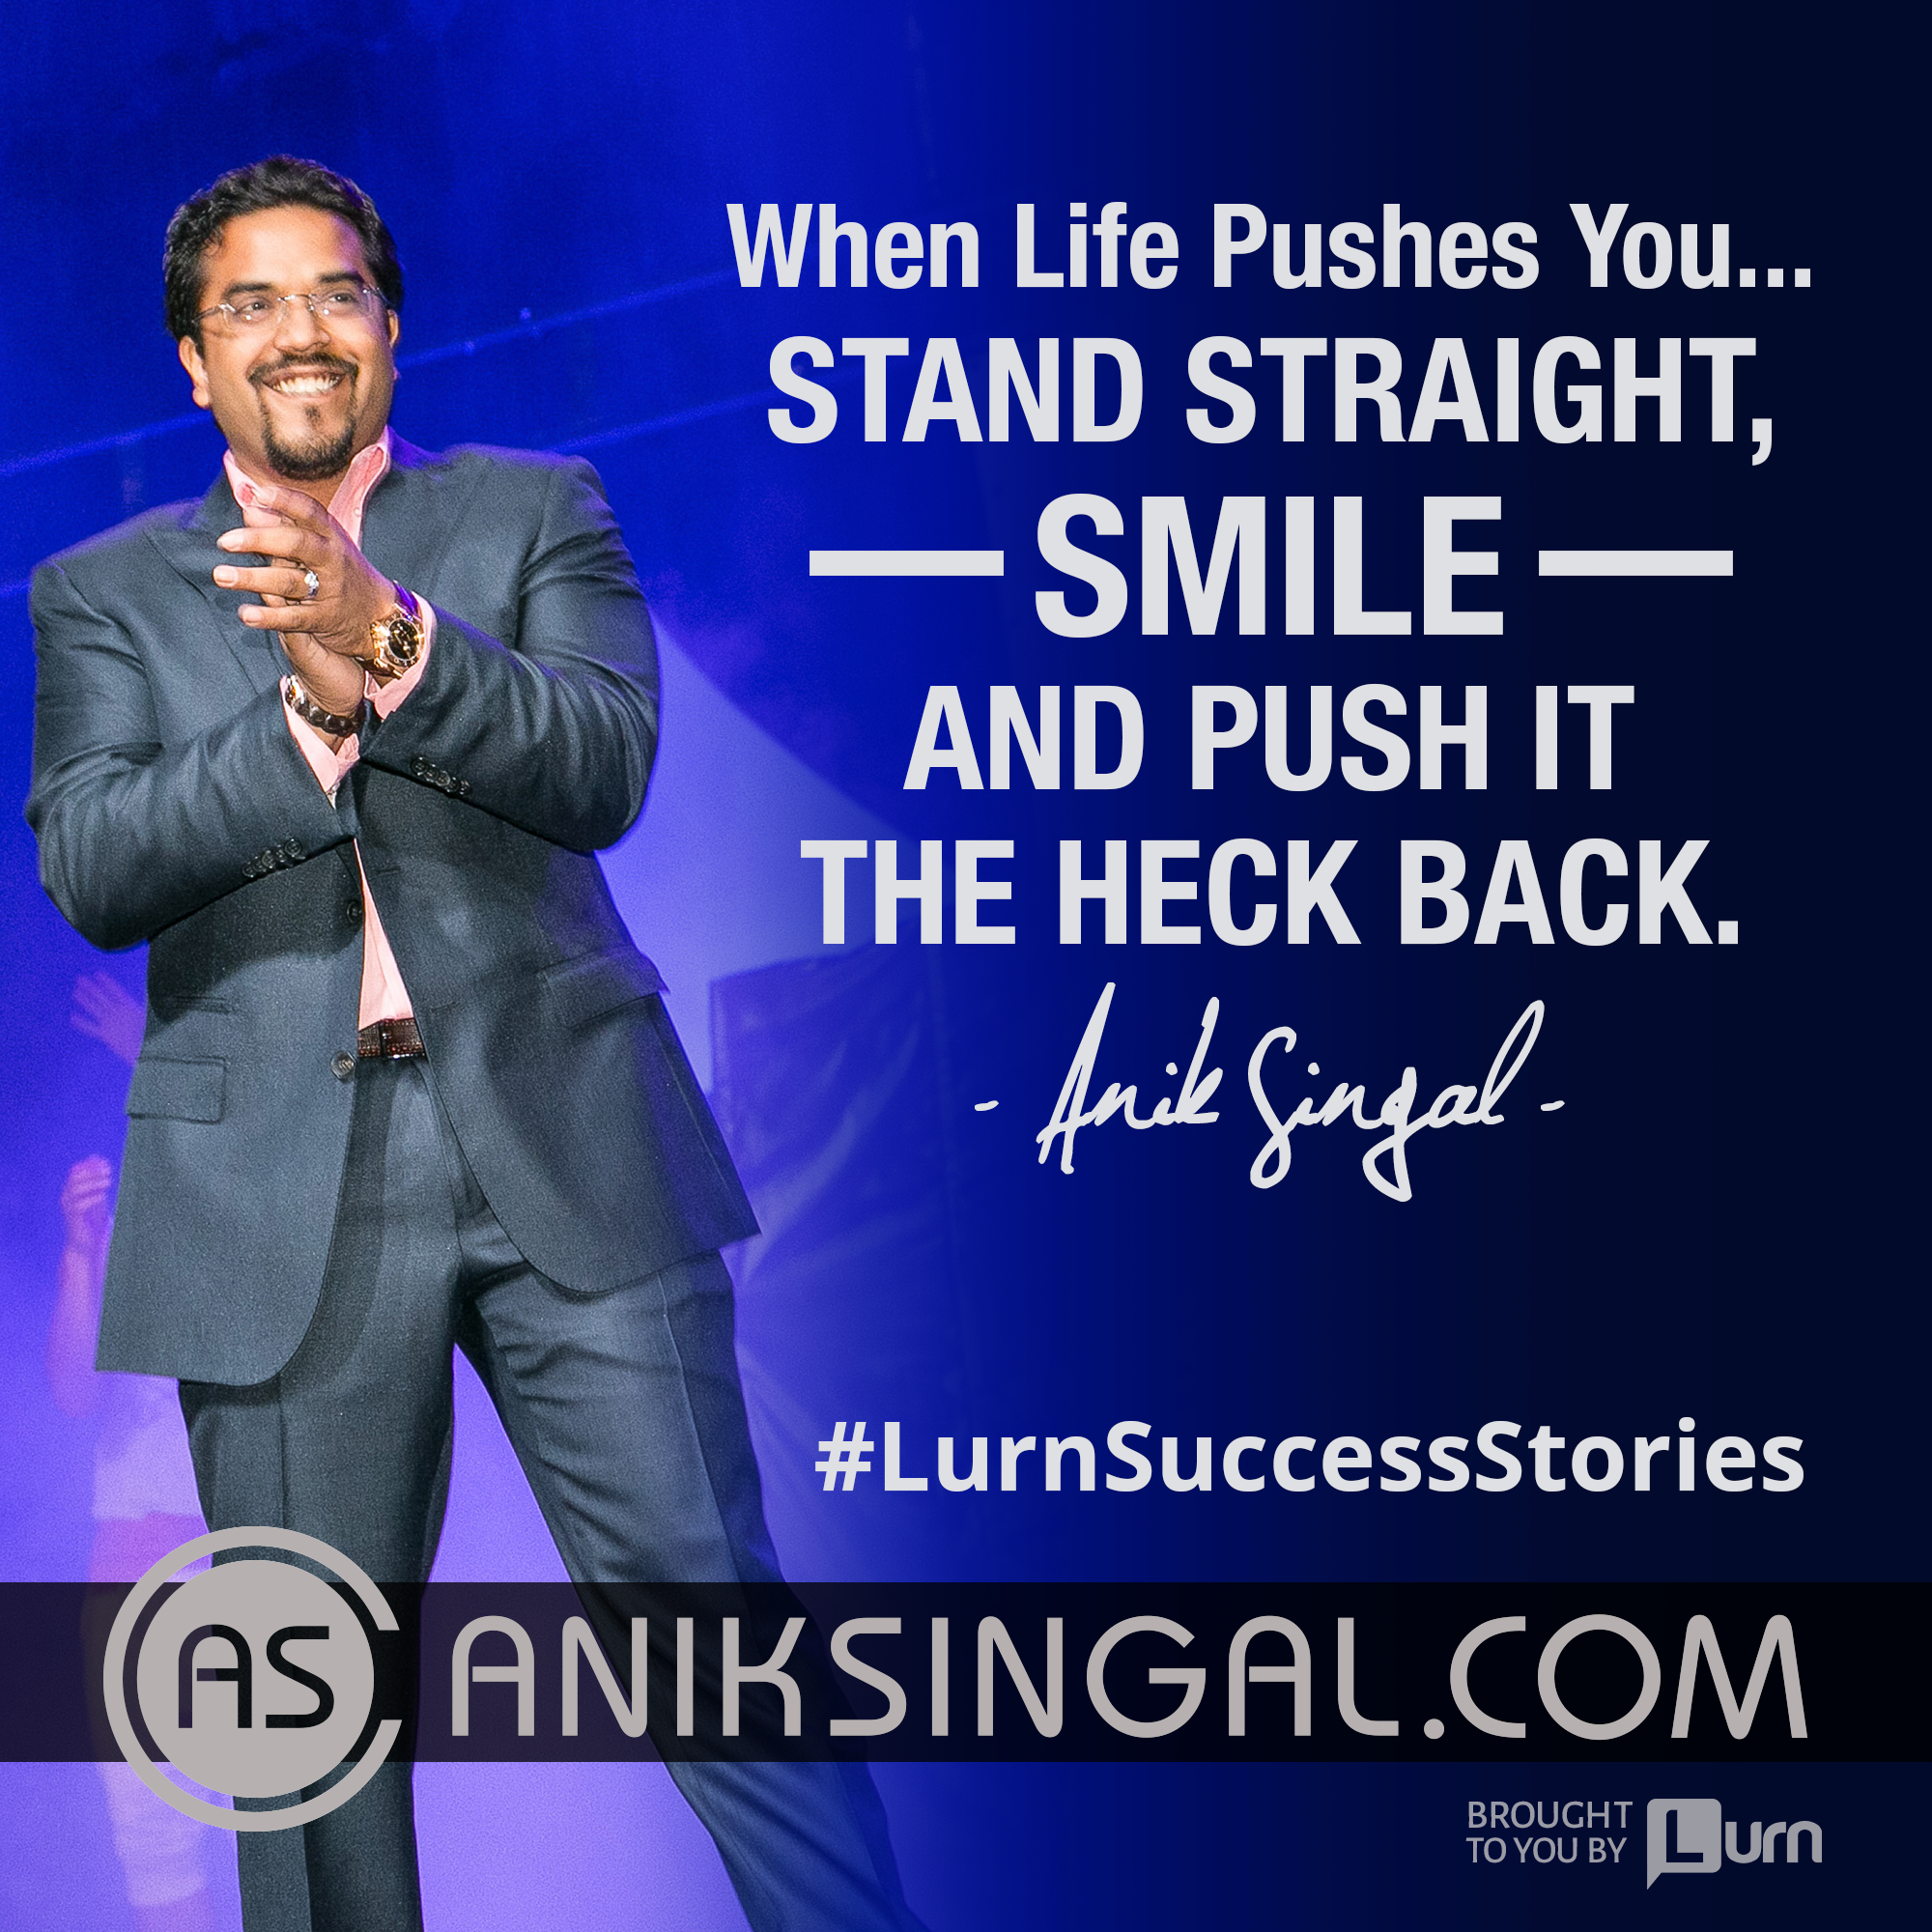 When life pushes you, stand straight, smile and push it the heck back. Anik Singal